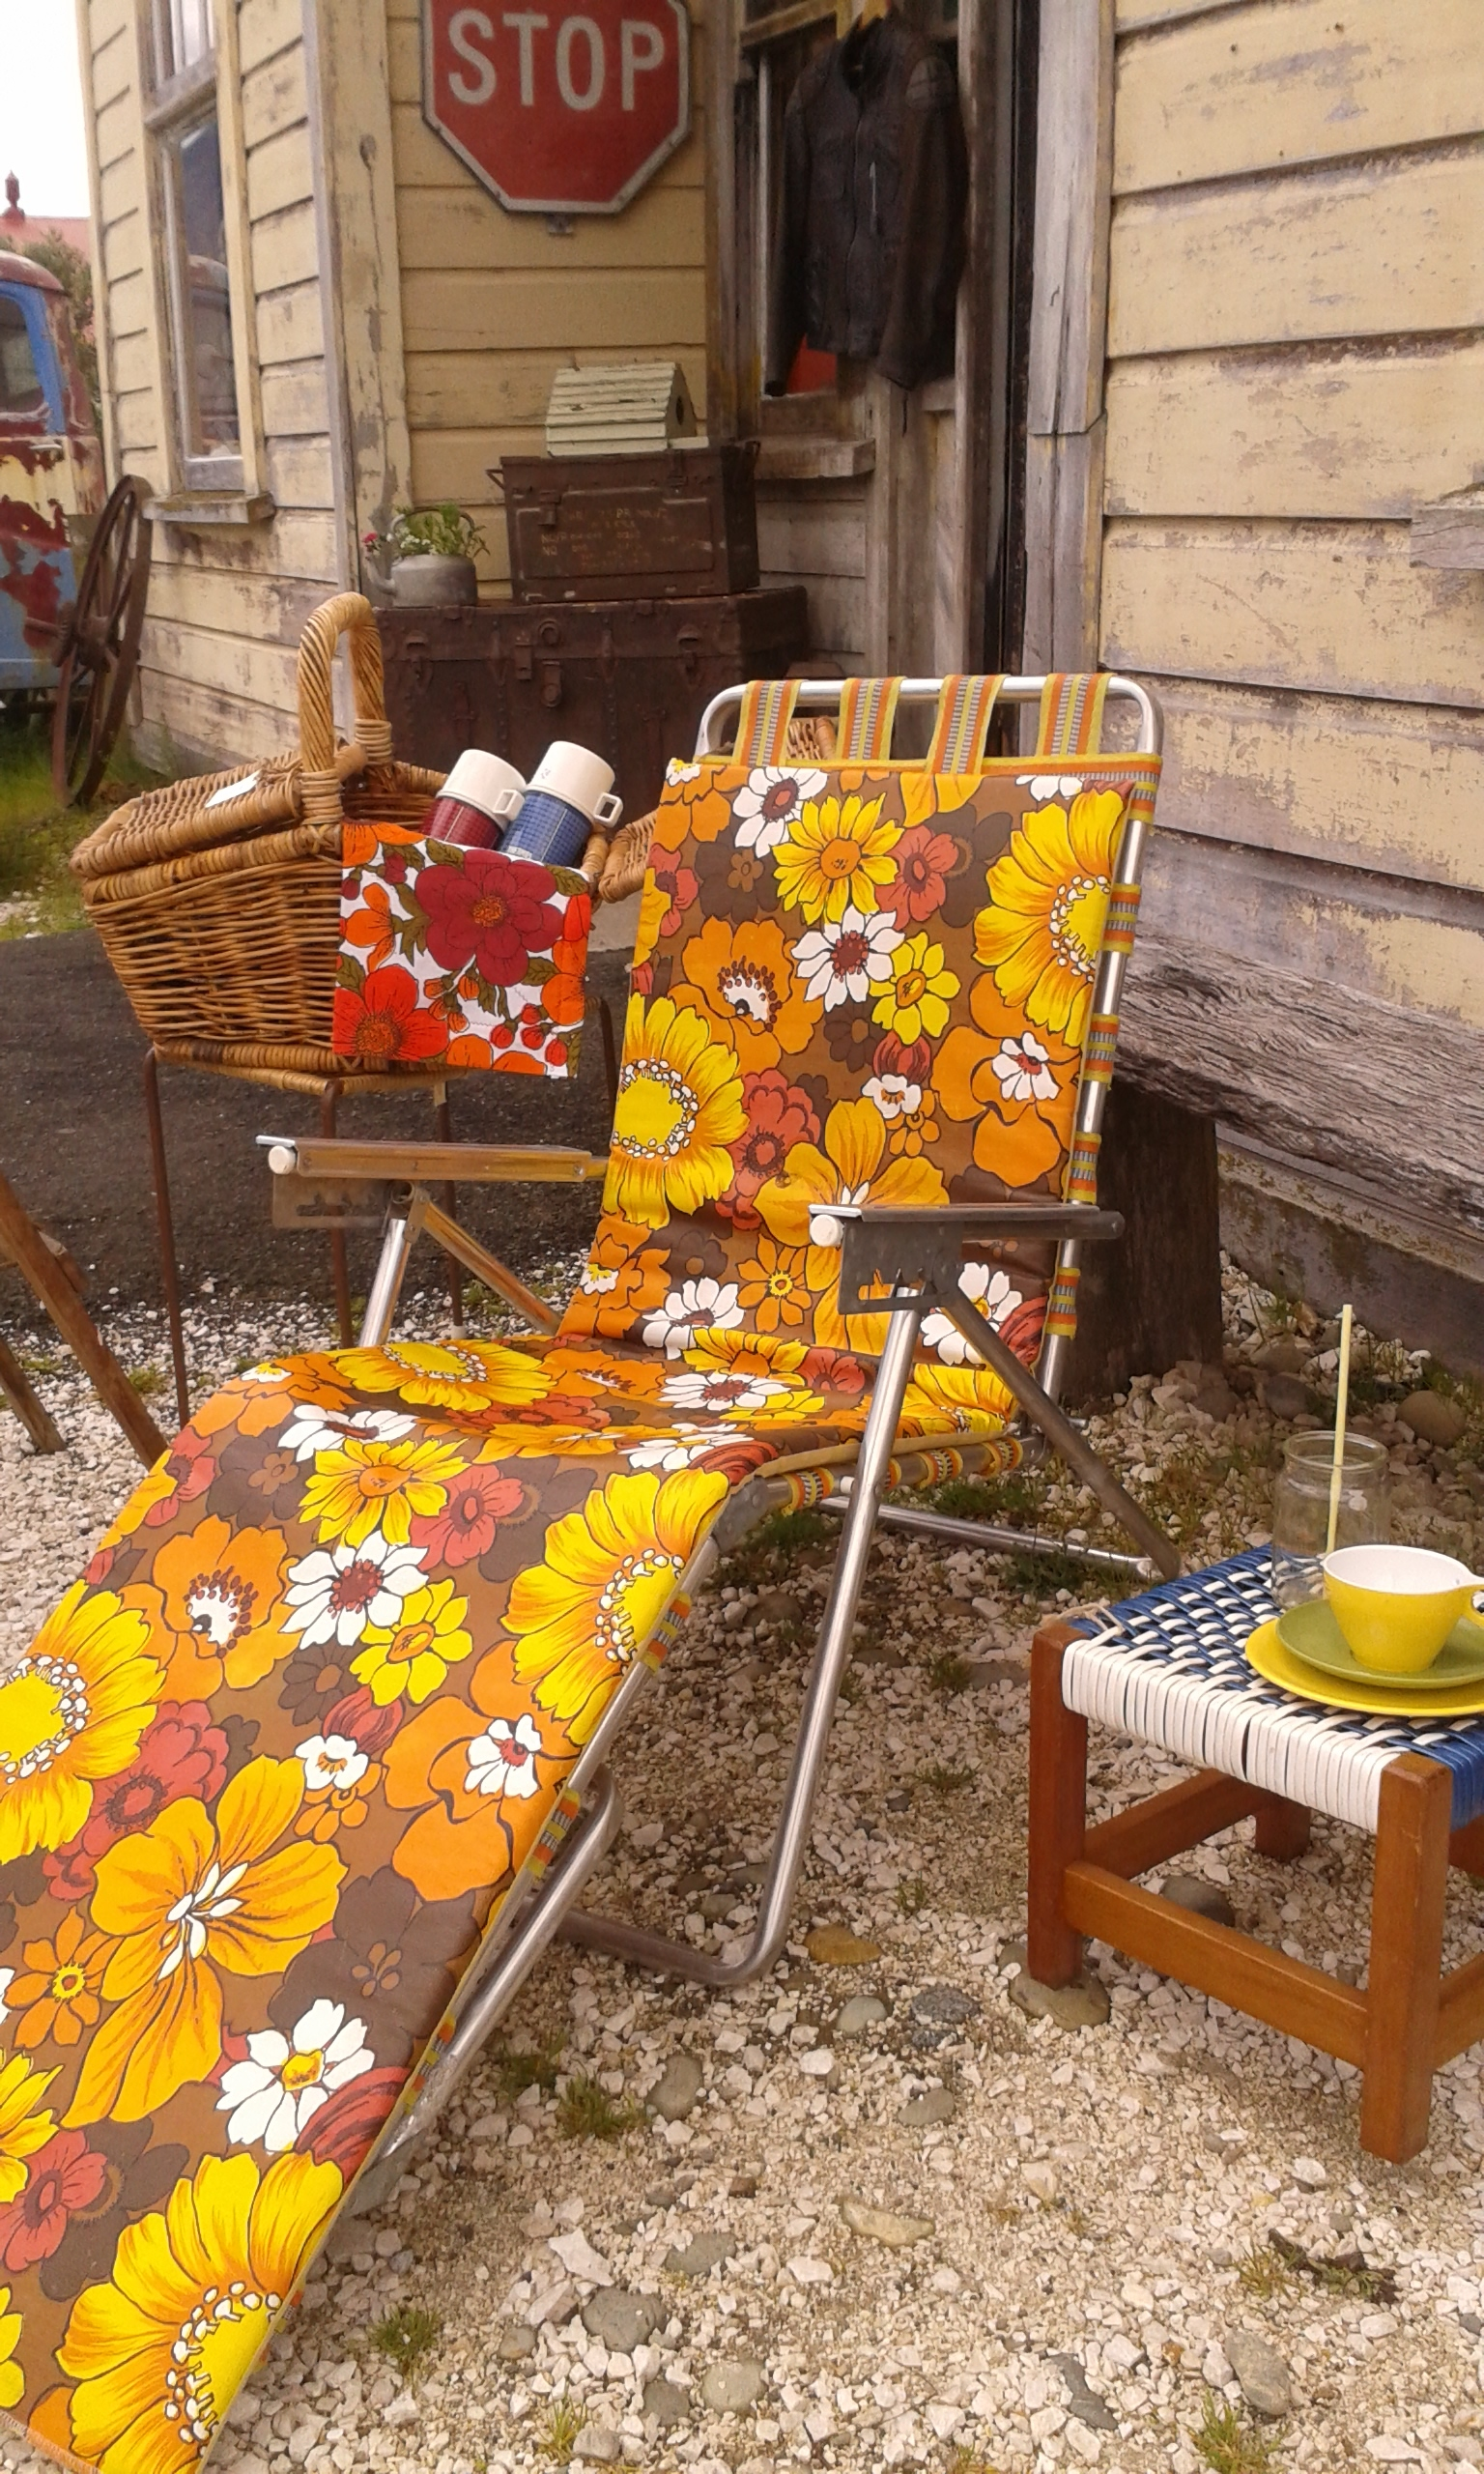 Relaxing in the sun feels great with the right Retro sunlounger and Duraware picknick ware goodies. Rad old chests in the background.